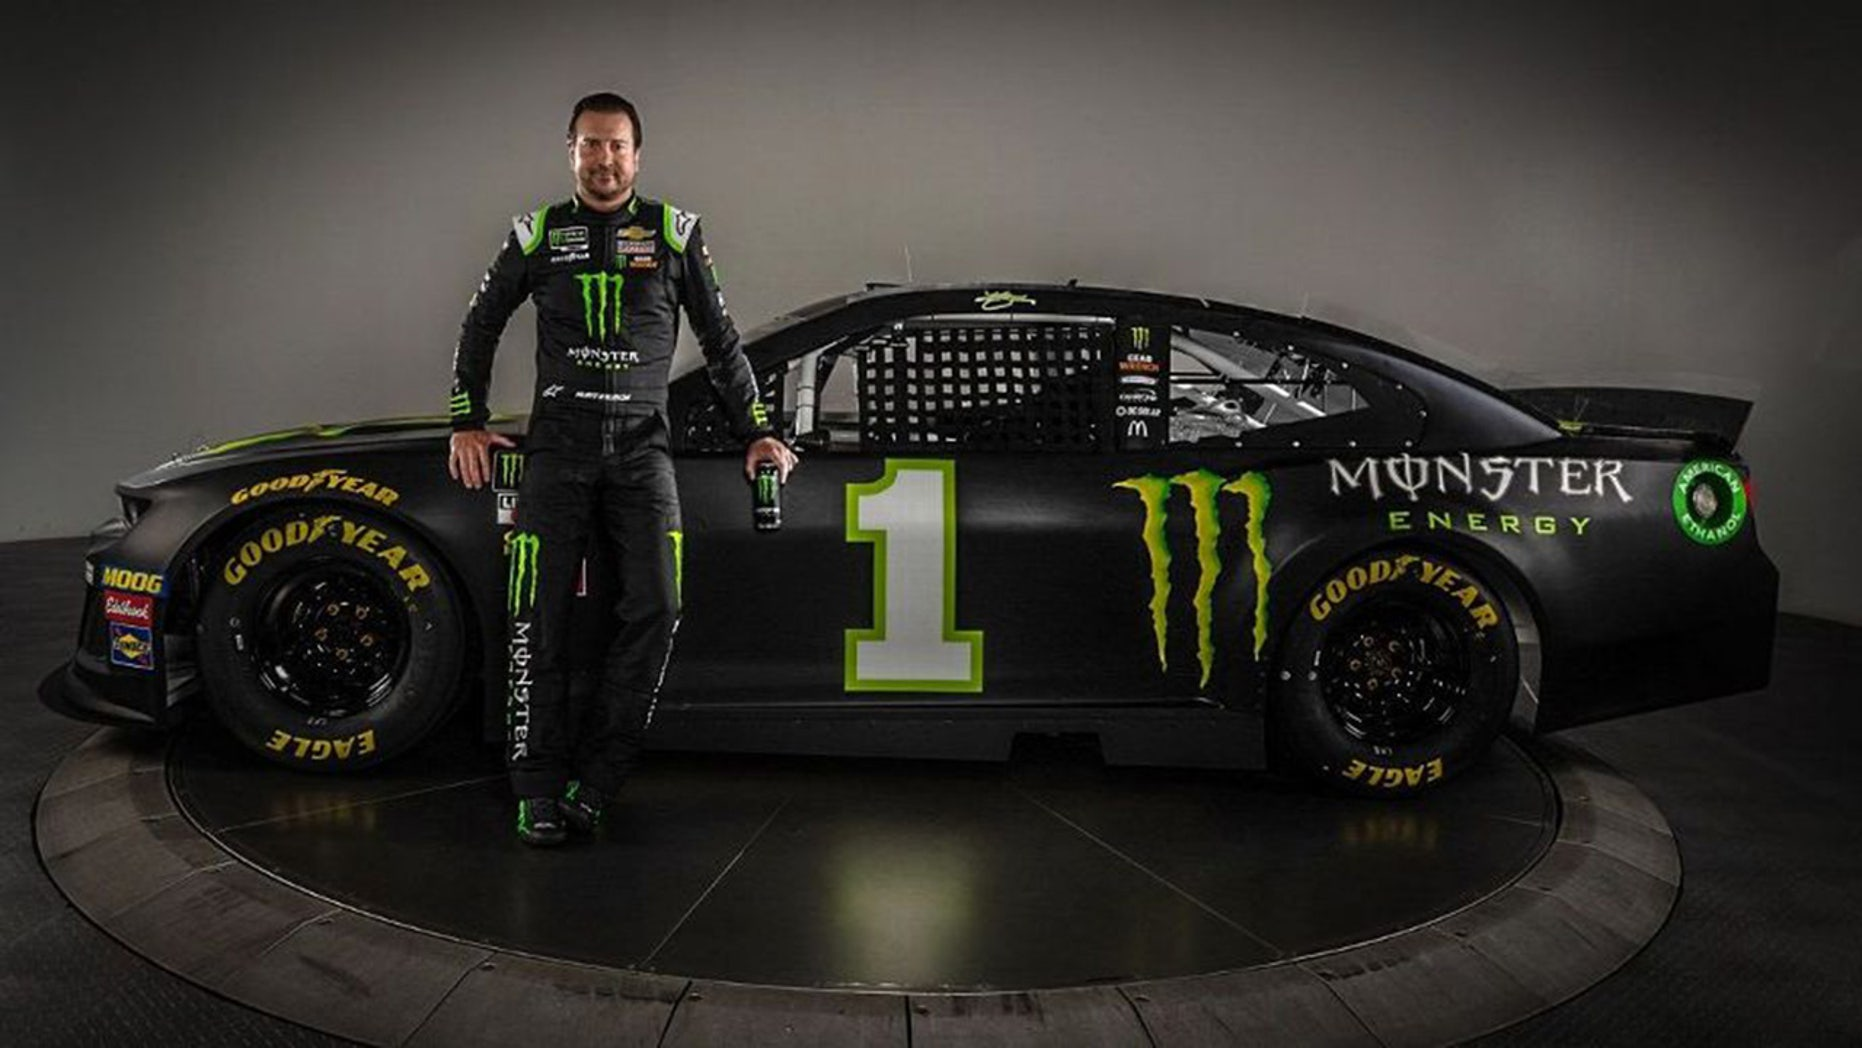 Kurt Busch signs with Chip Ganassi Racing after leaving Stewart-Haas